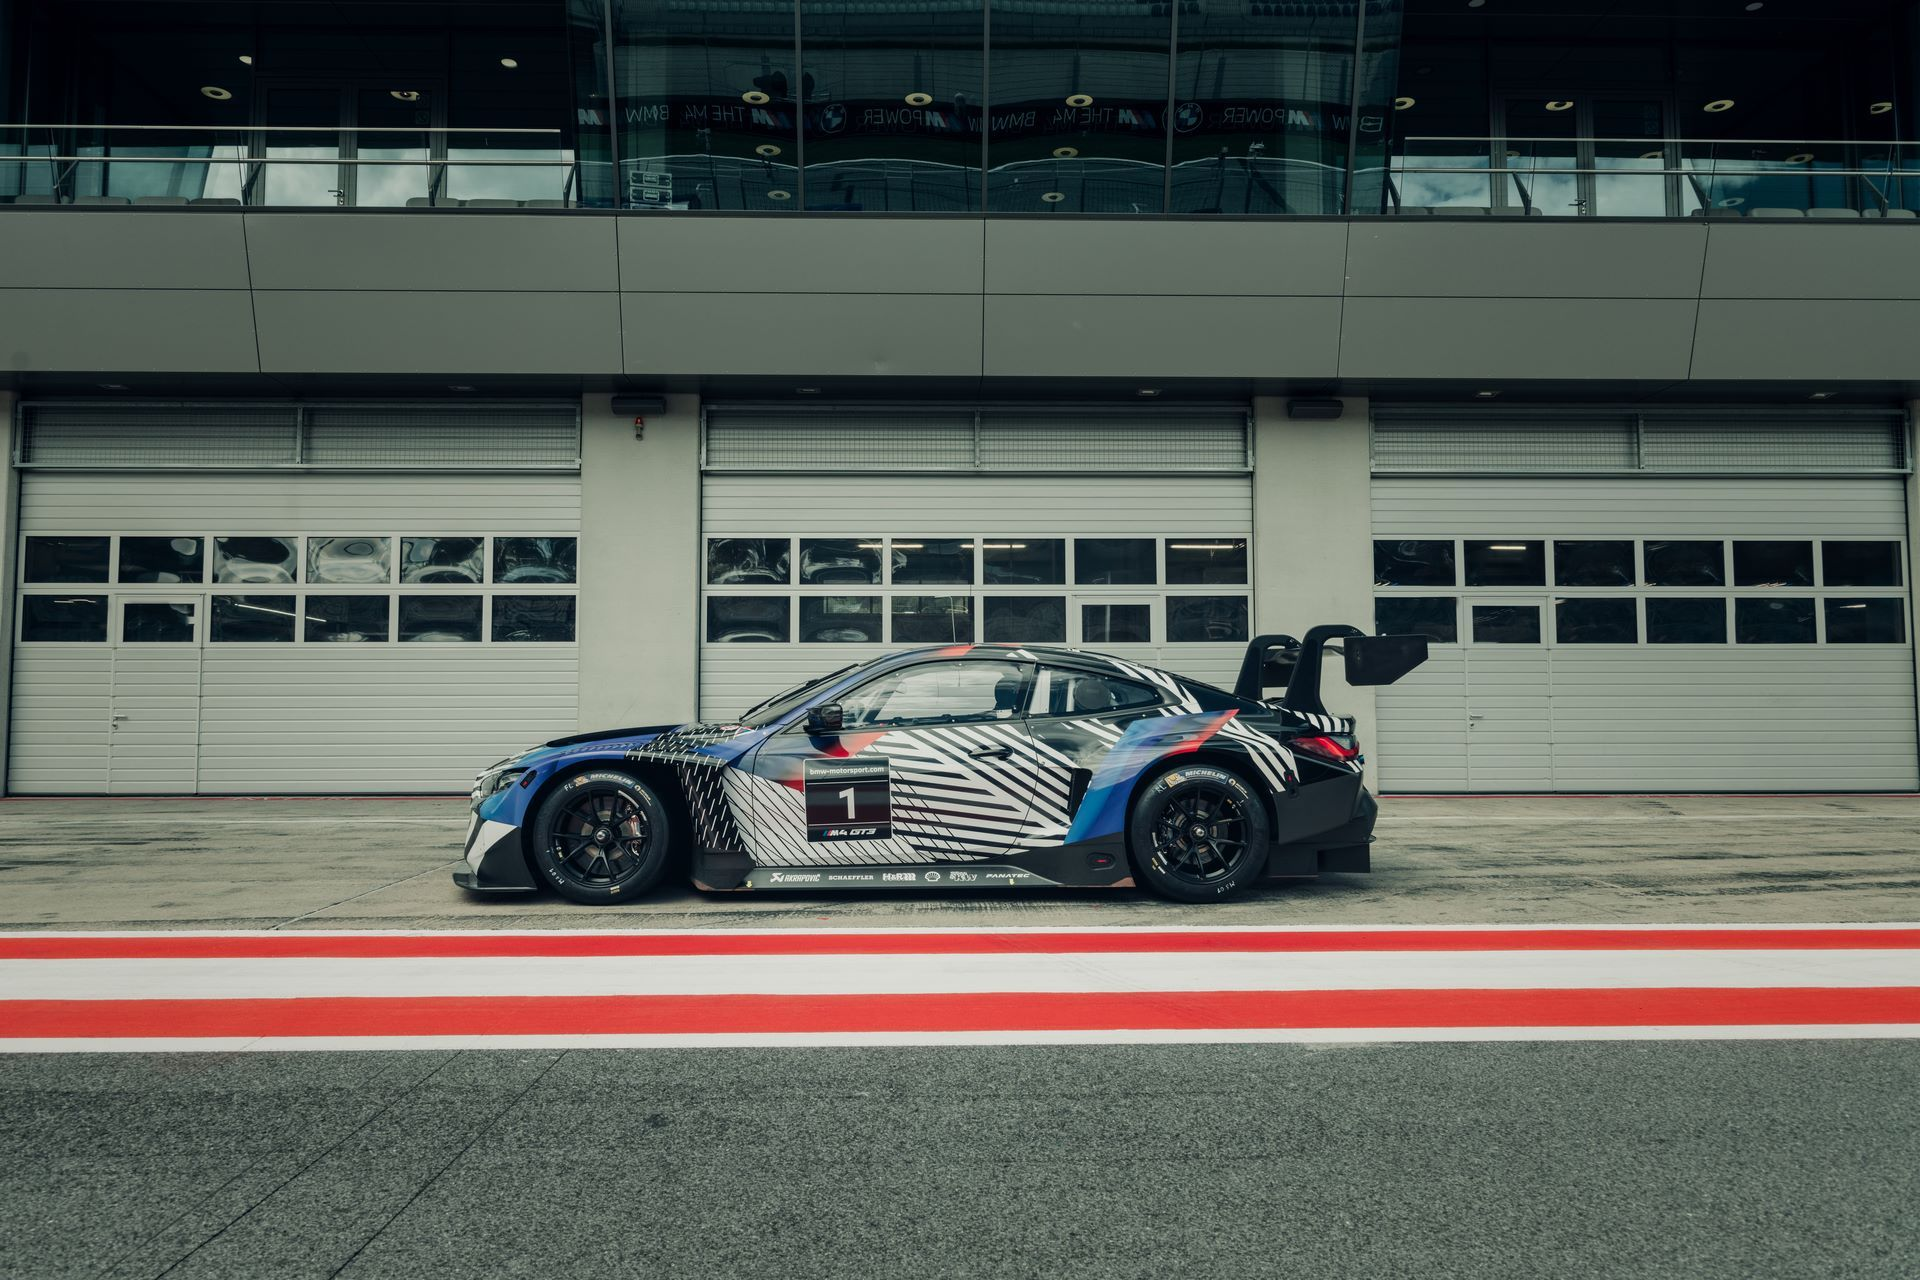 New-BMW-M4-Coupe-and-BMW-M4-GT3-prototypes-15